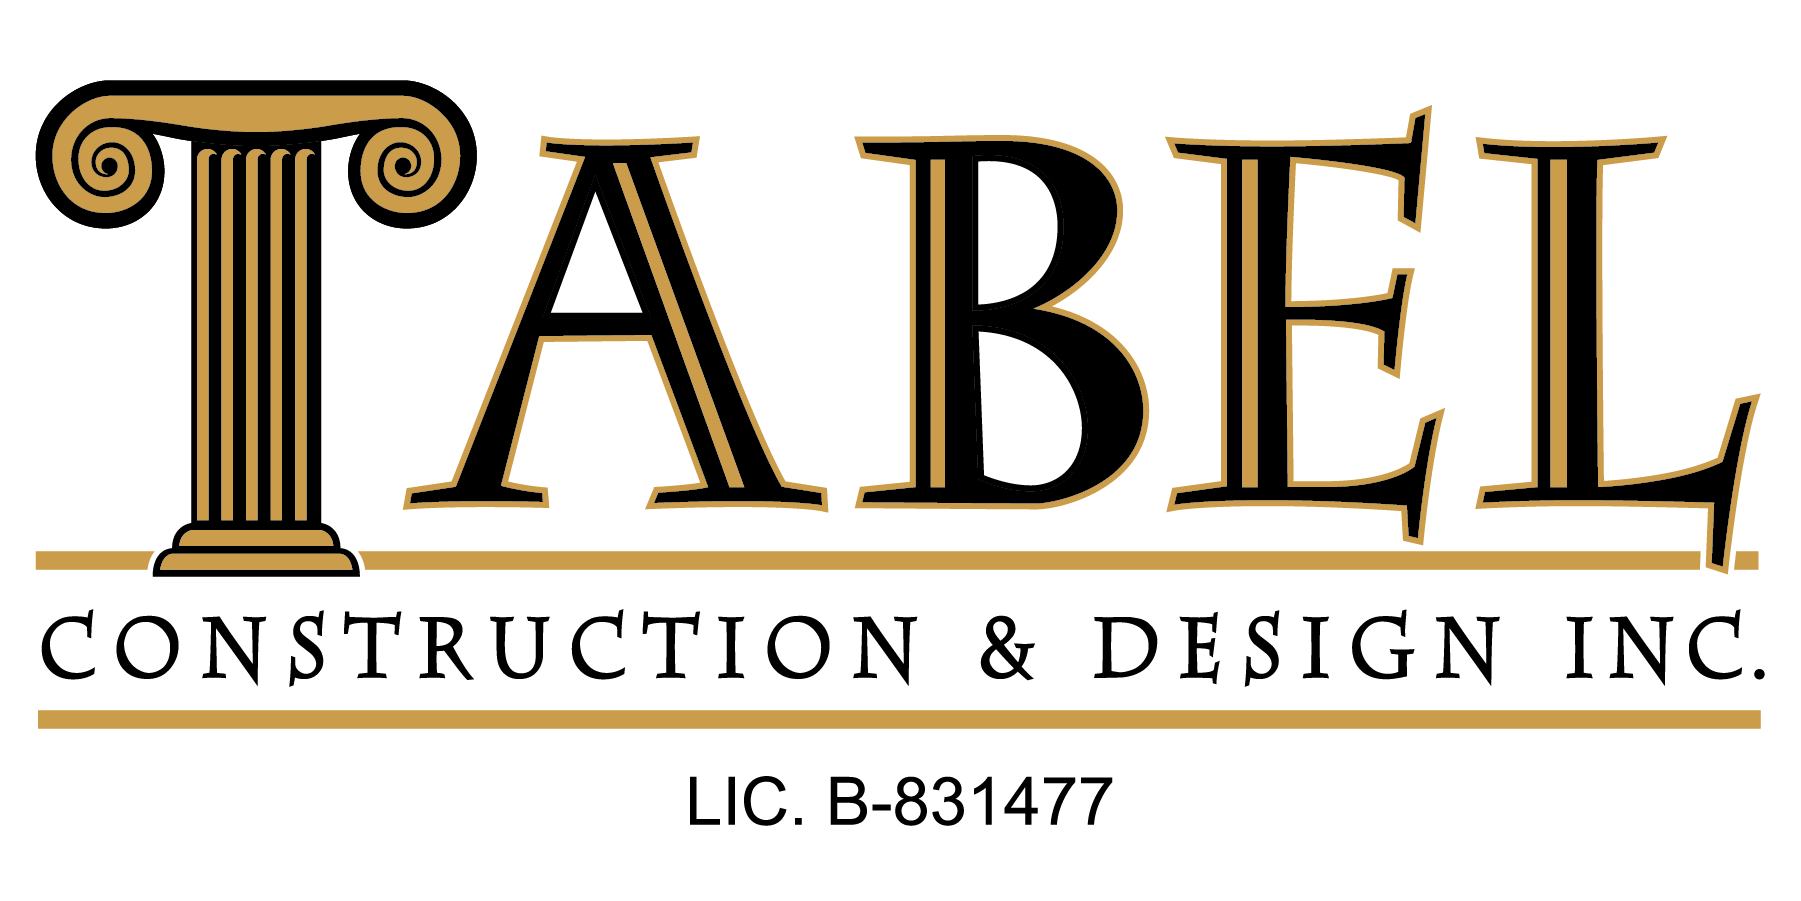 Tabel Construction and Design, Inc.